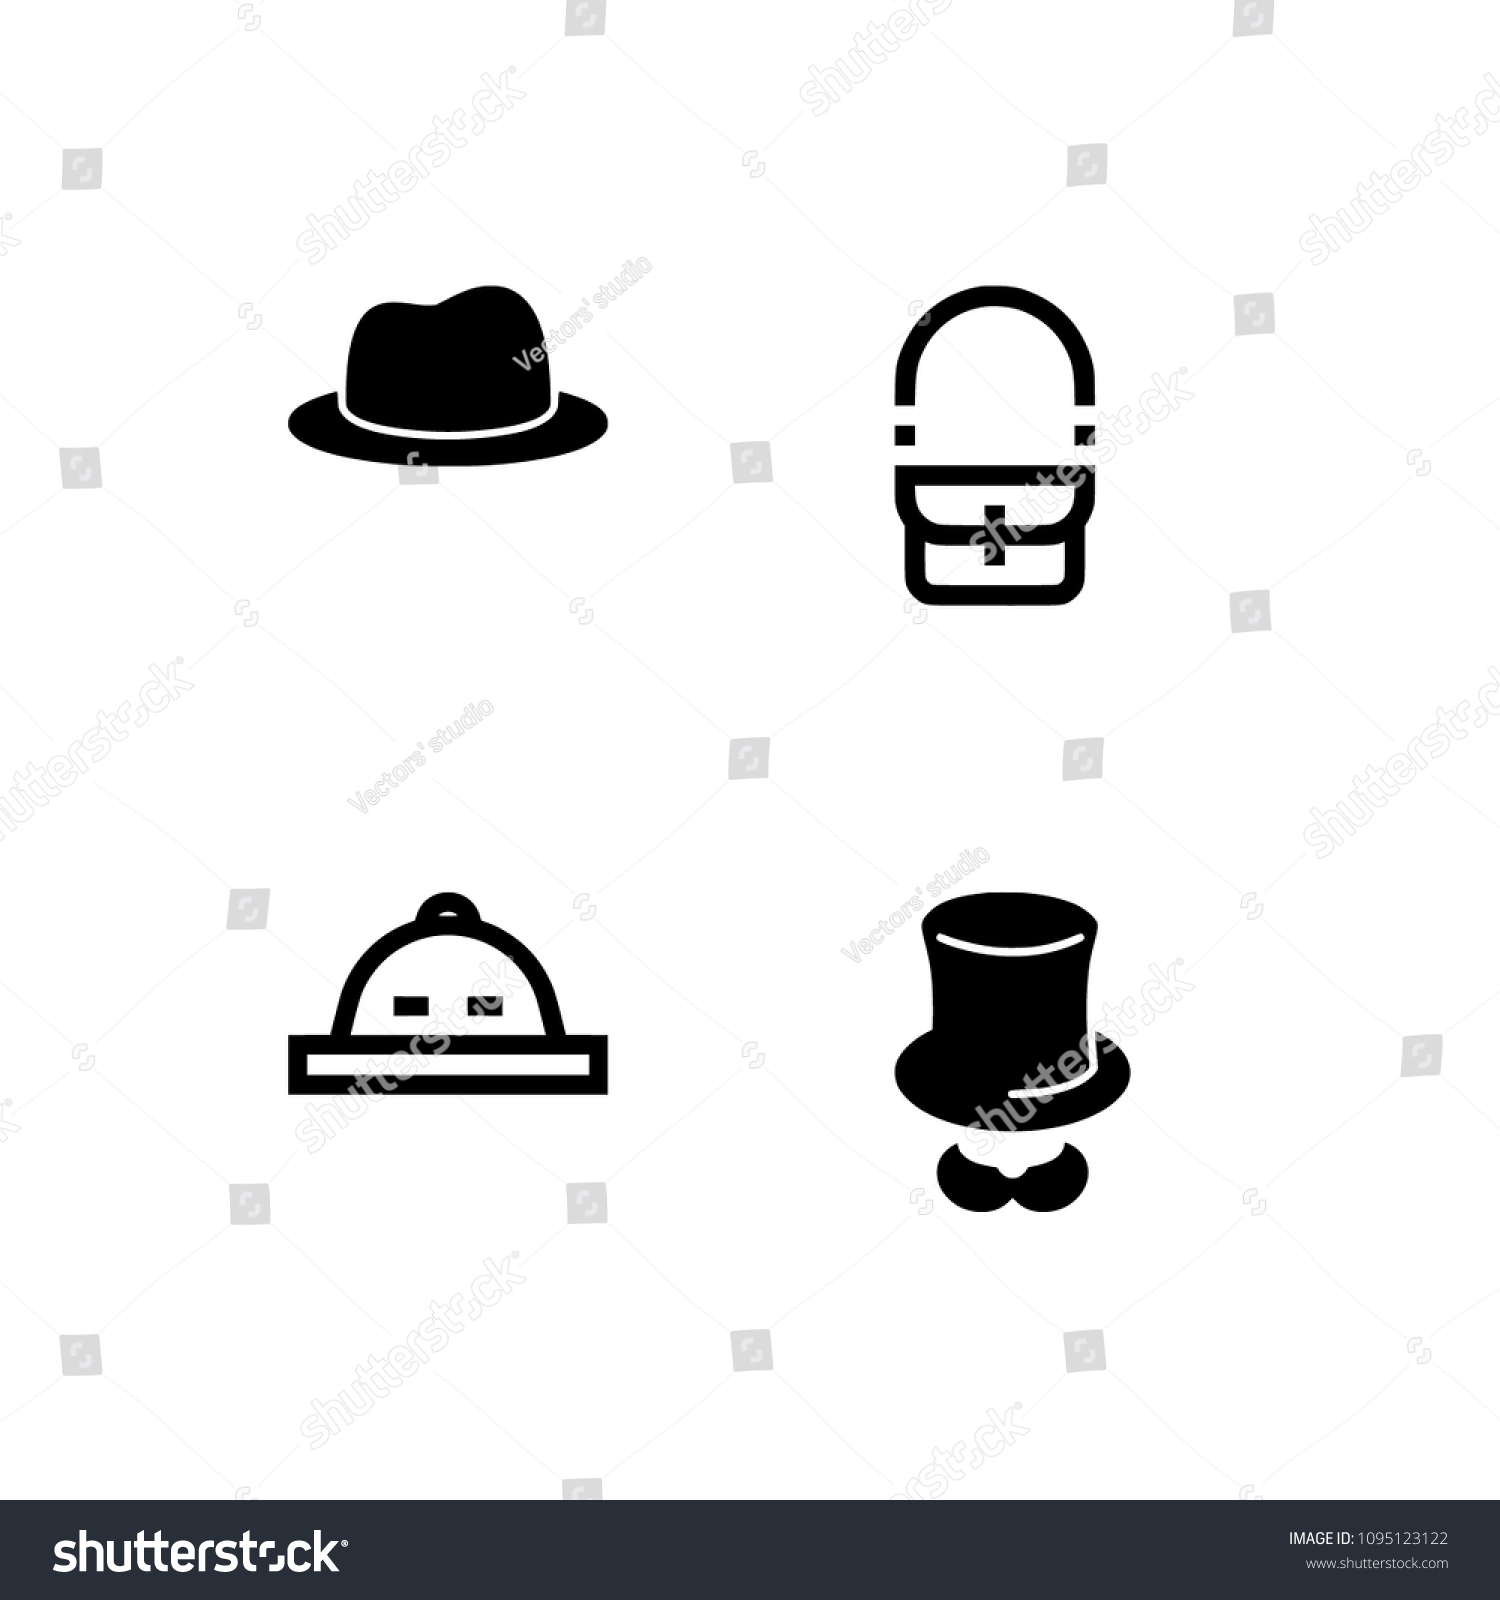 da5ca98b50c Professional pixel perfect black   white icons optimized for both large and  small resolutions. Transparent background. - Vector